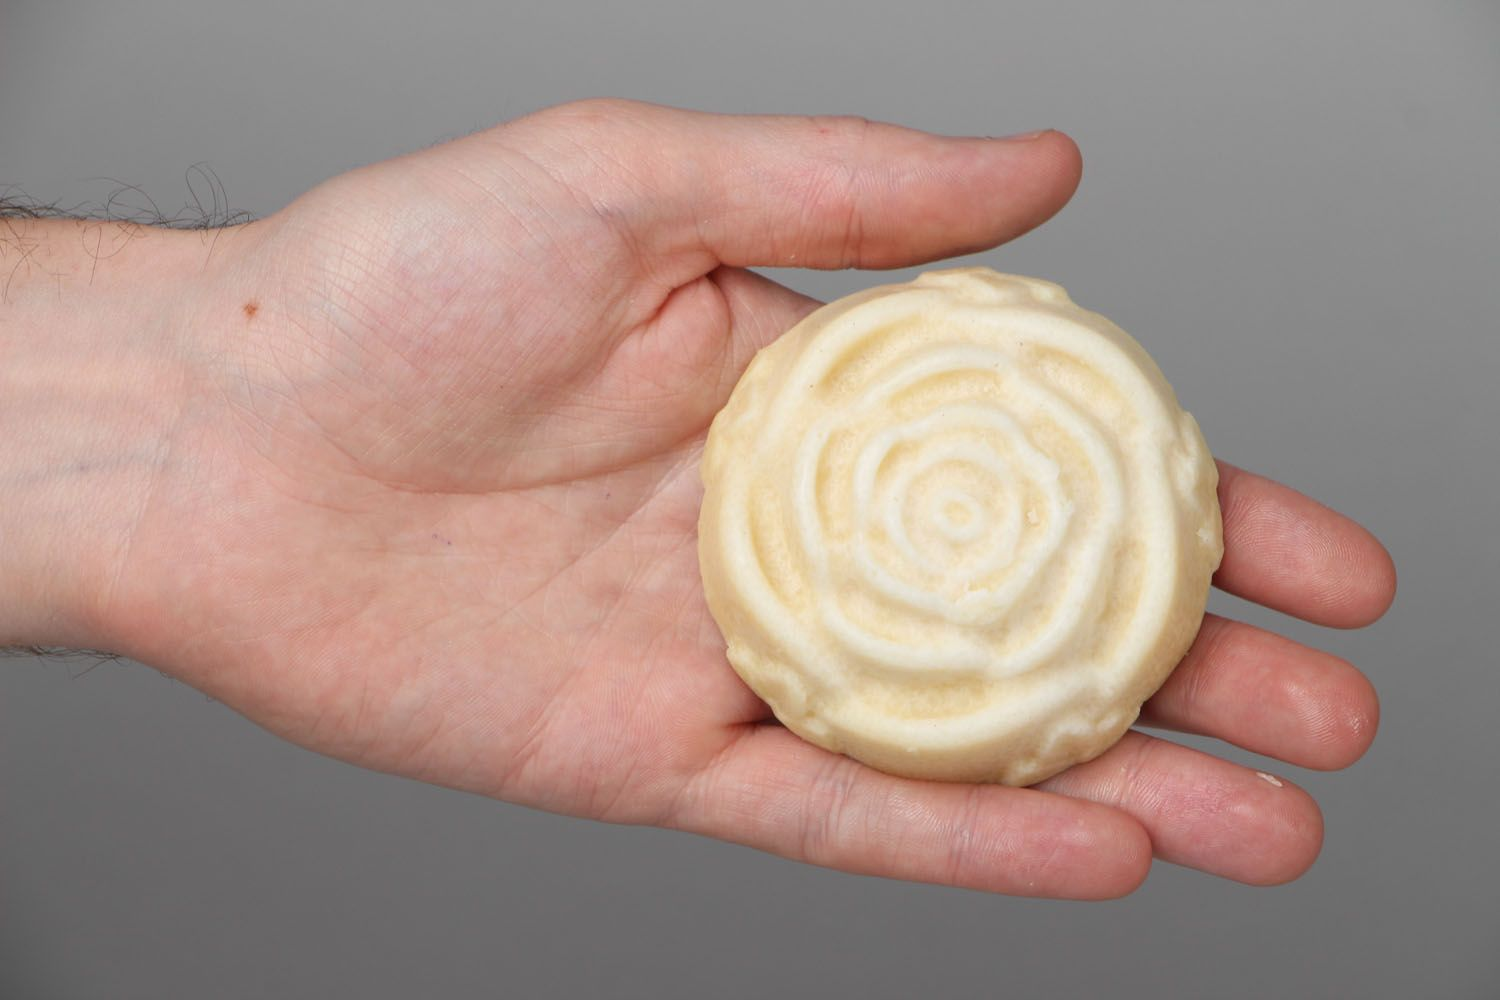 Plate-cream in the shape of rose photo 3